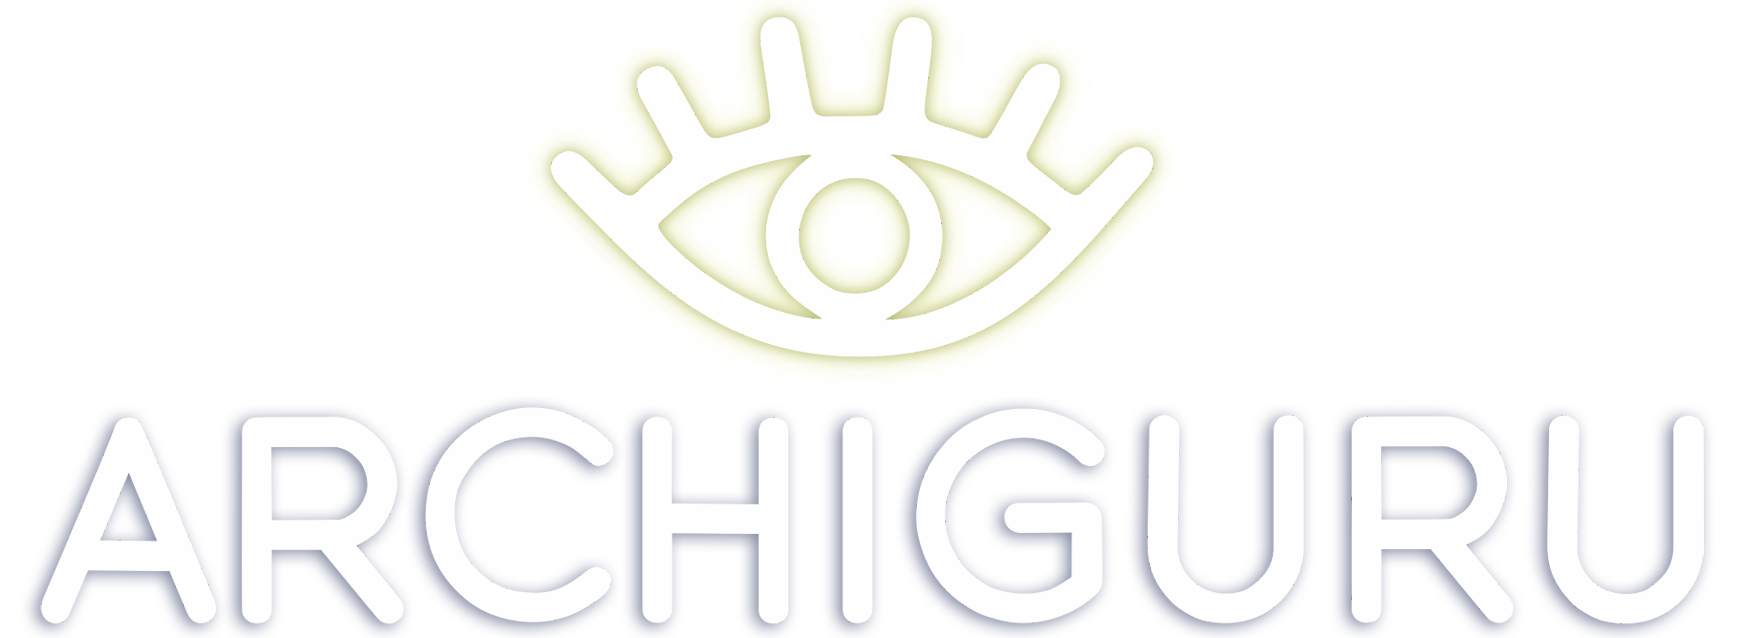 ARCHIGURU blog